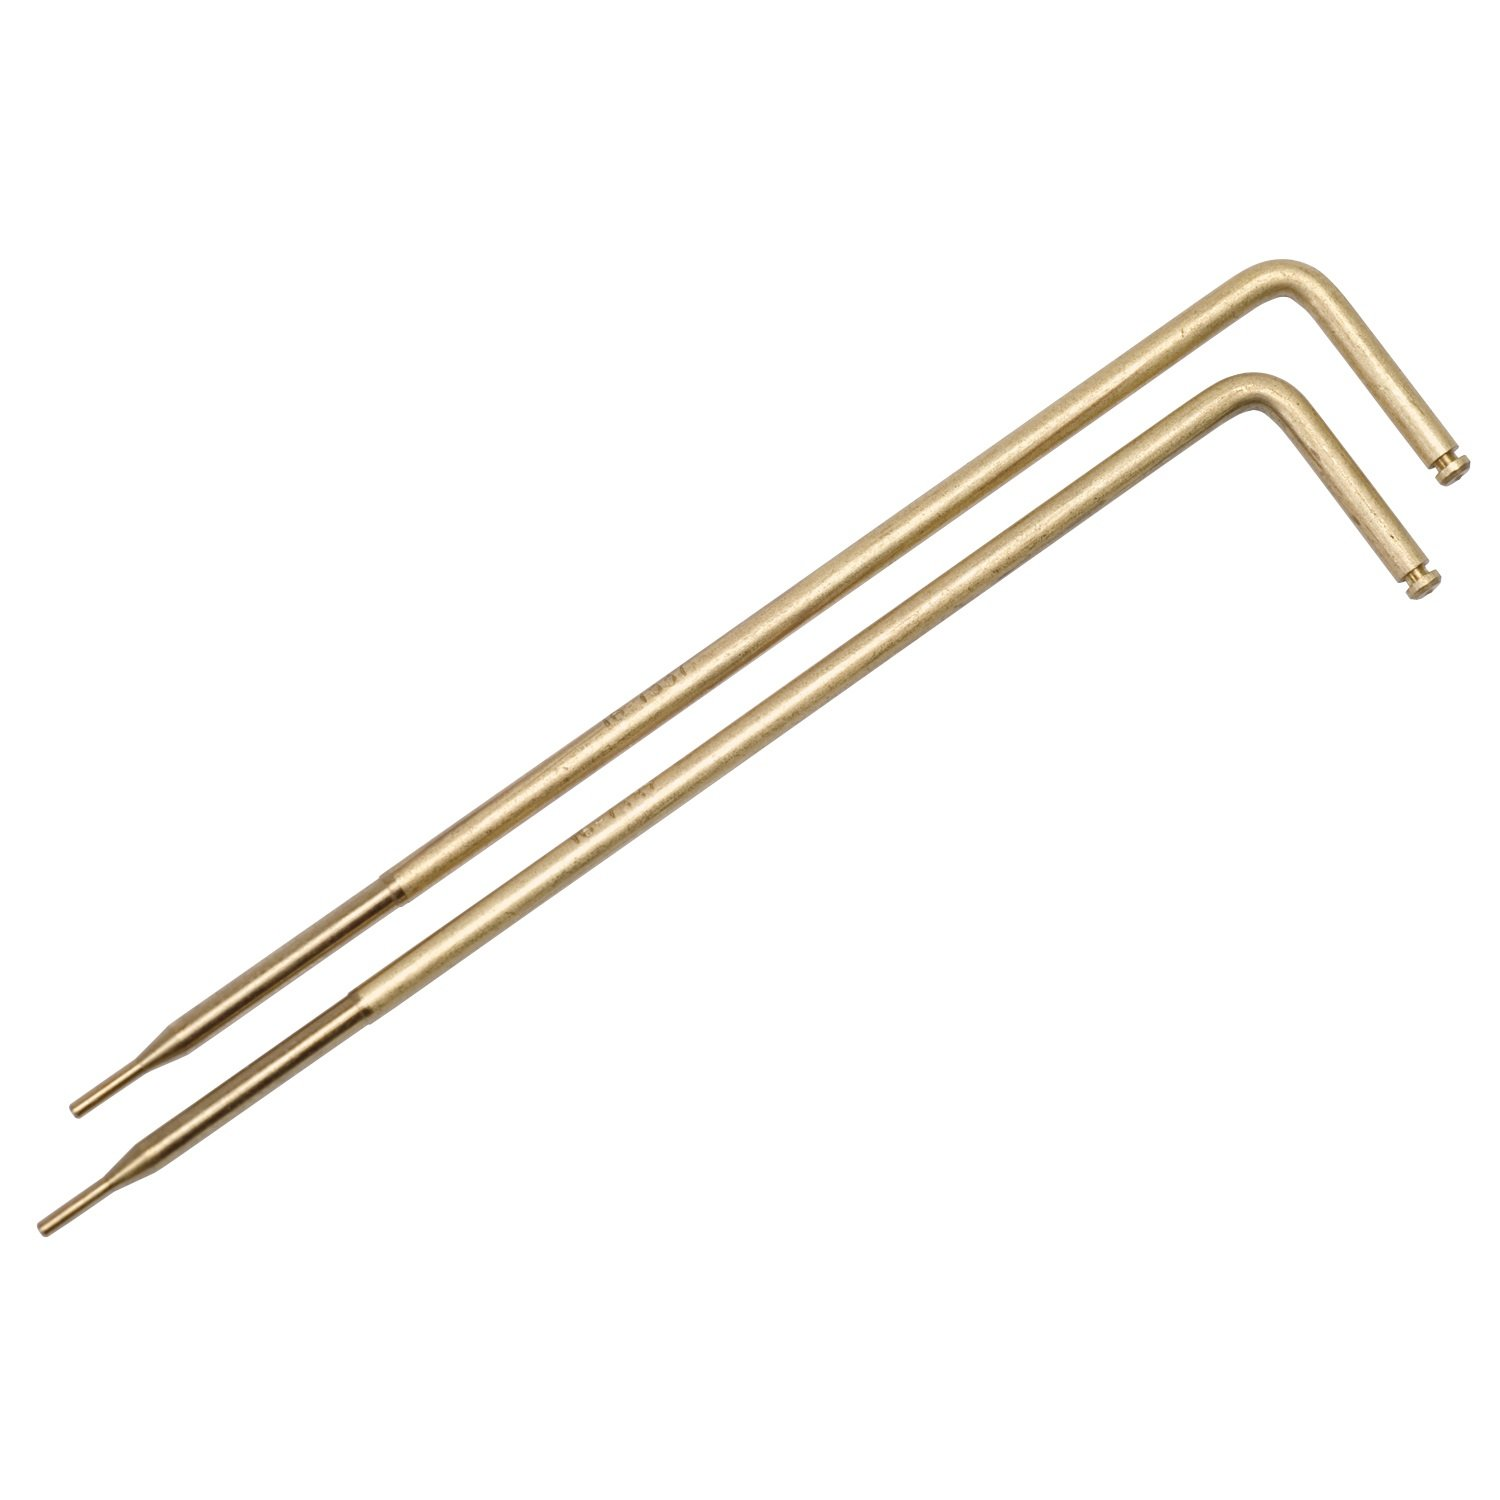 Edelbrock 1459 Metering Rod - Set of 2